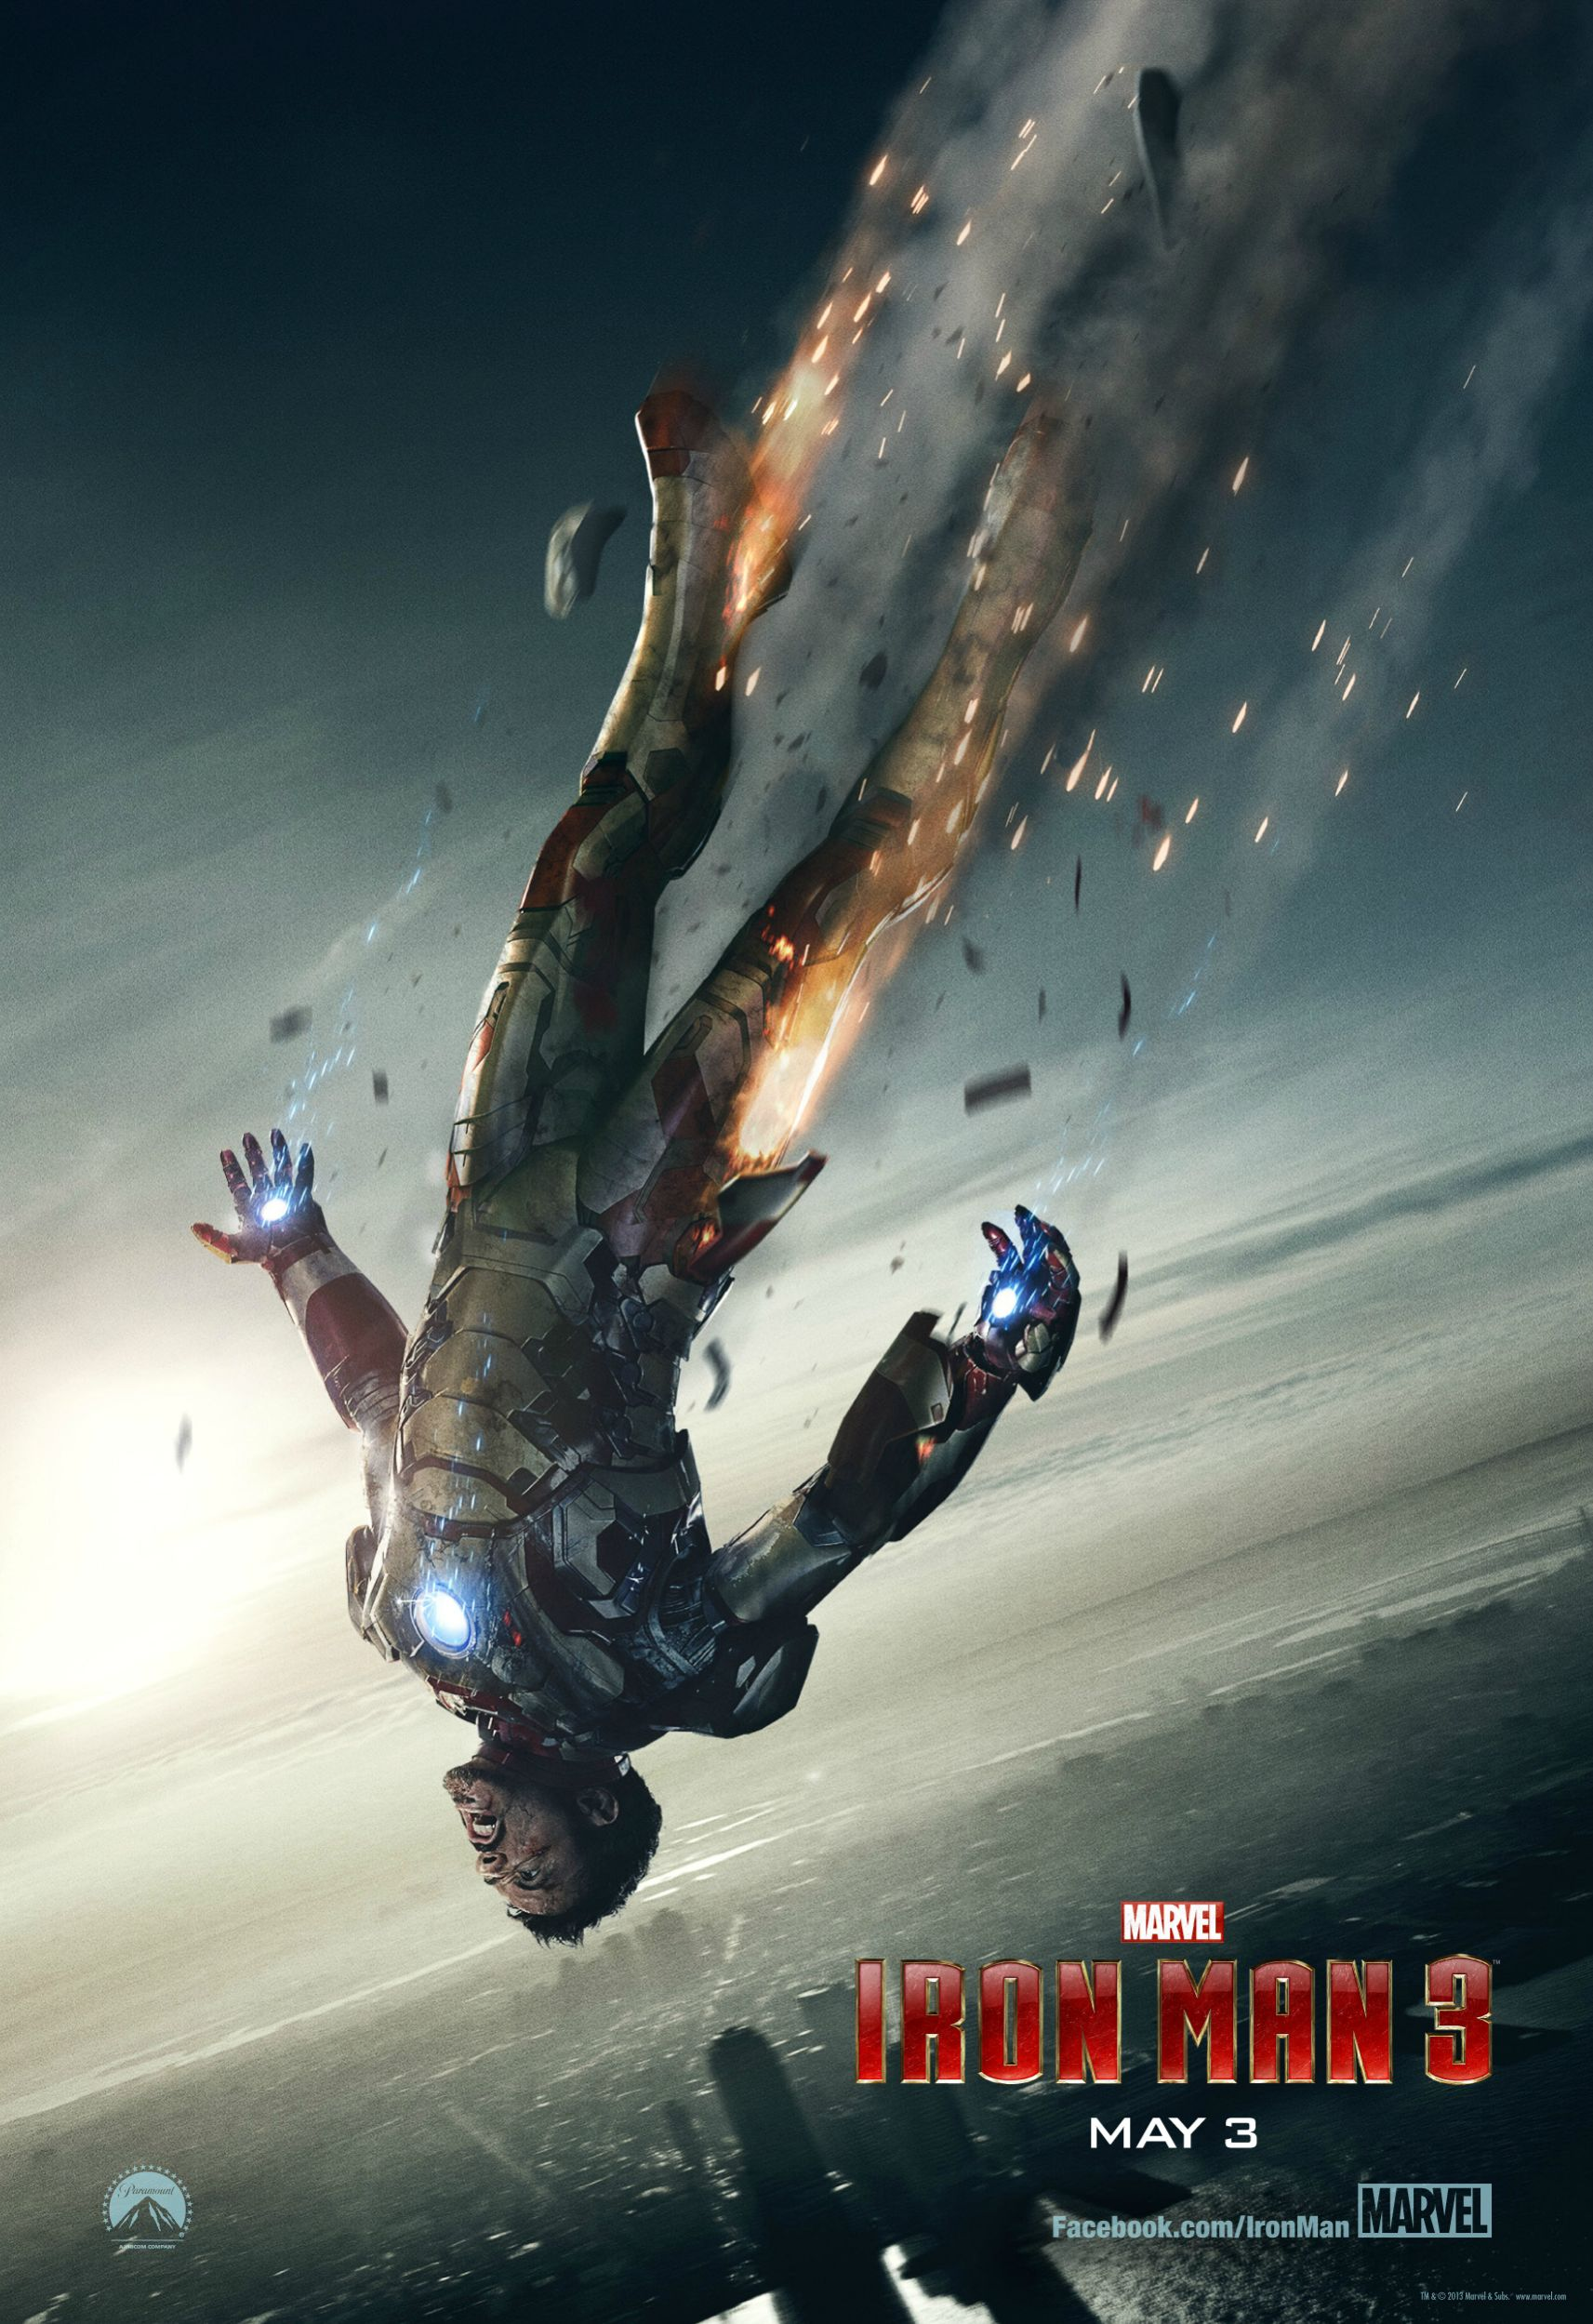 Iron Man 3 Poster 2 New IRON MAN 3 Trailer Leaks, Shows Hulbuster and Army of Armor in Action